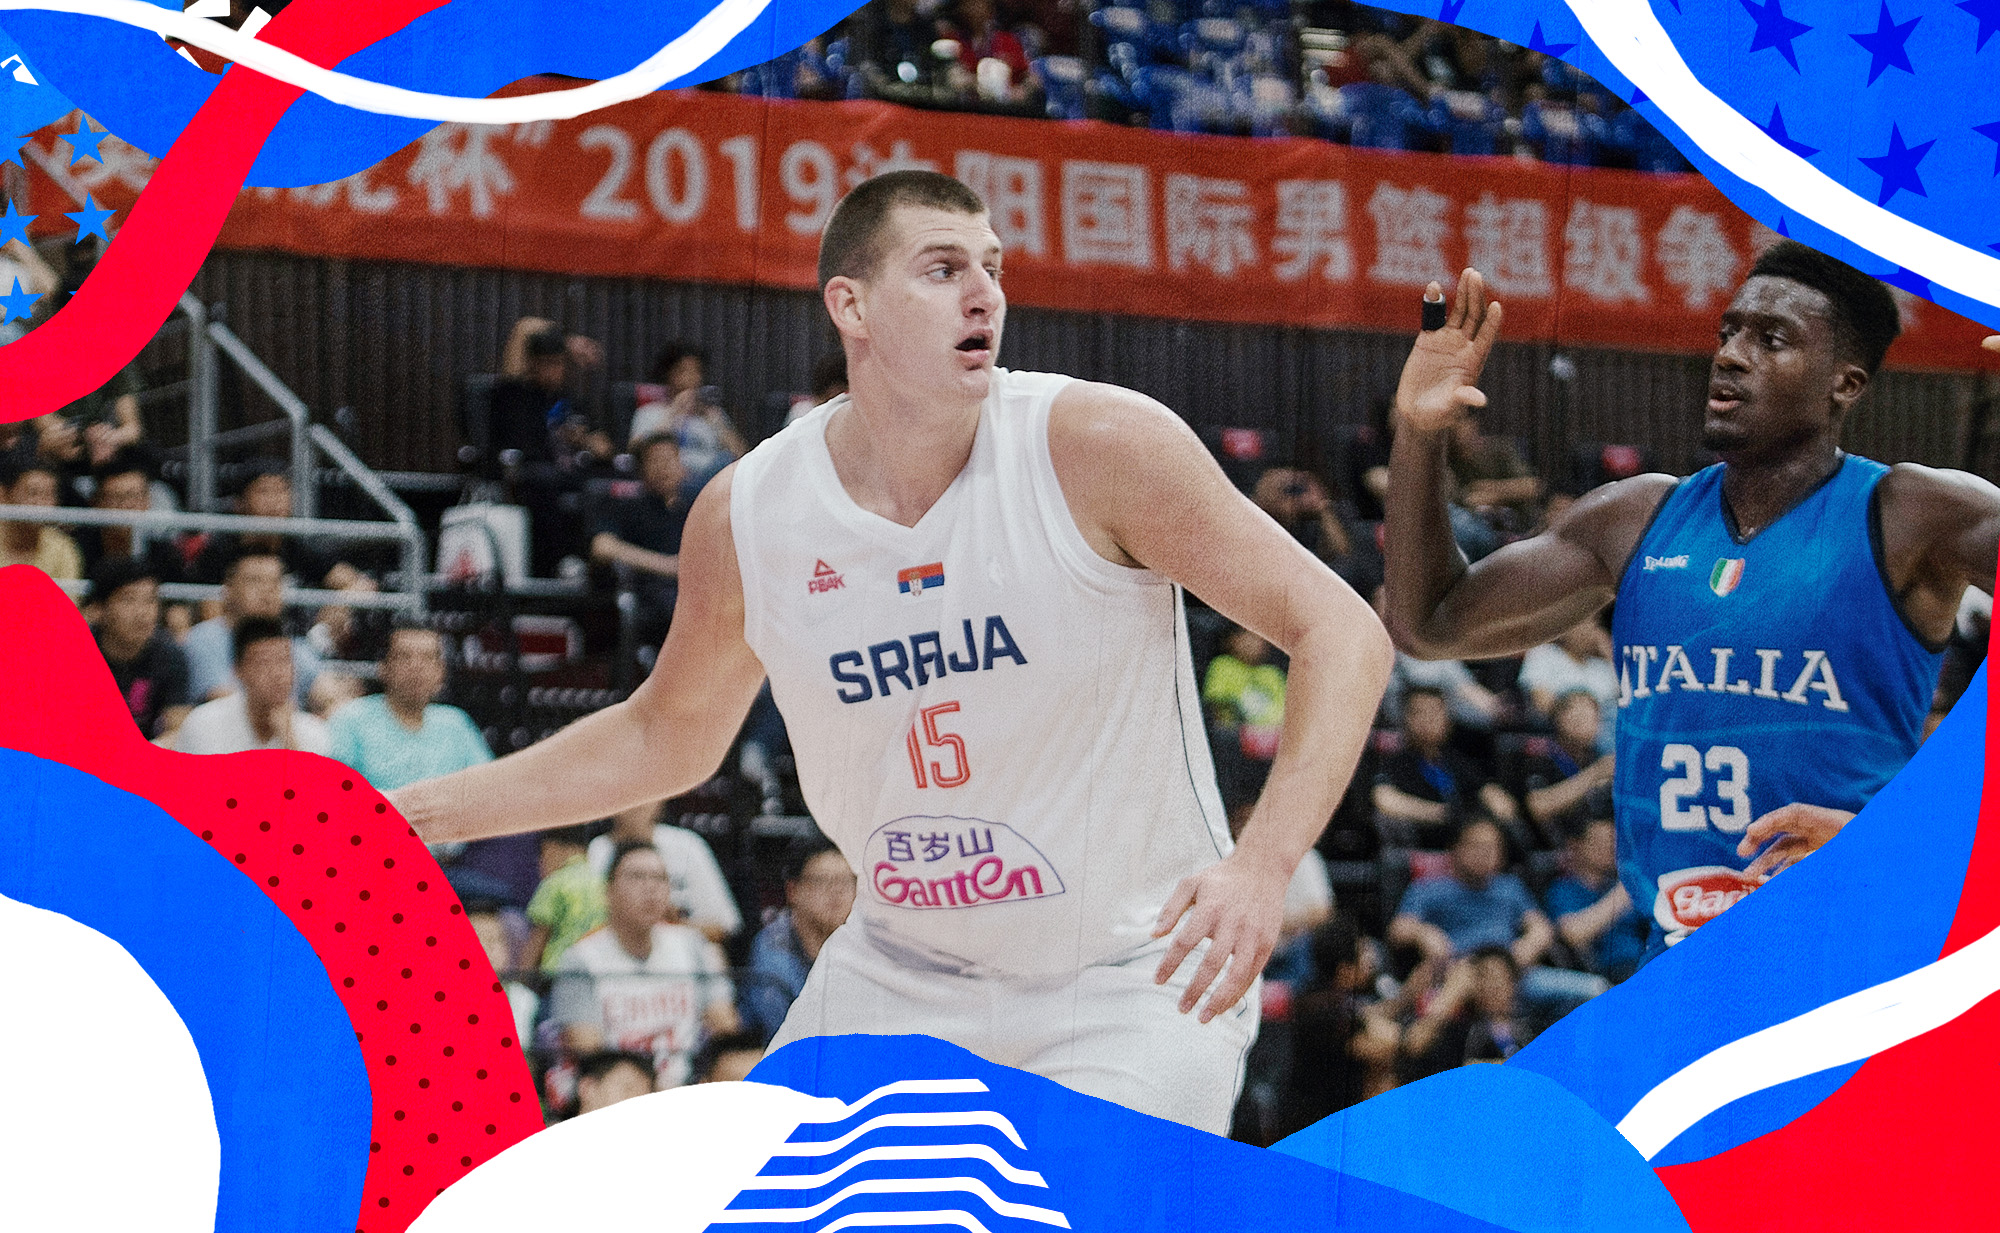 Serbia's Nikola Jokic, controlling the ball with his right hand, attempts to make a move in front of Italy's Awudu Abass.